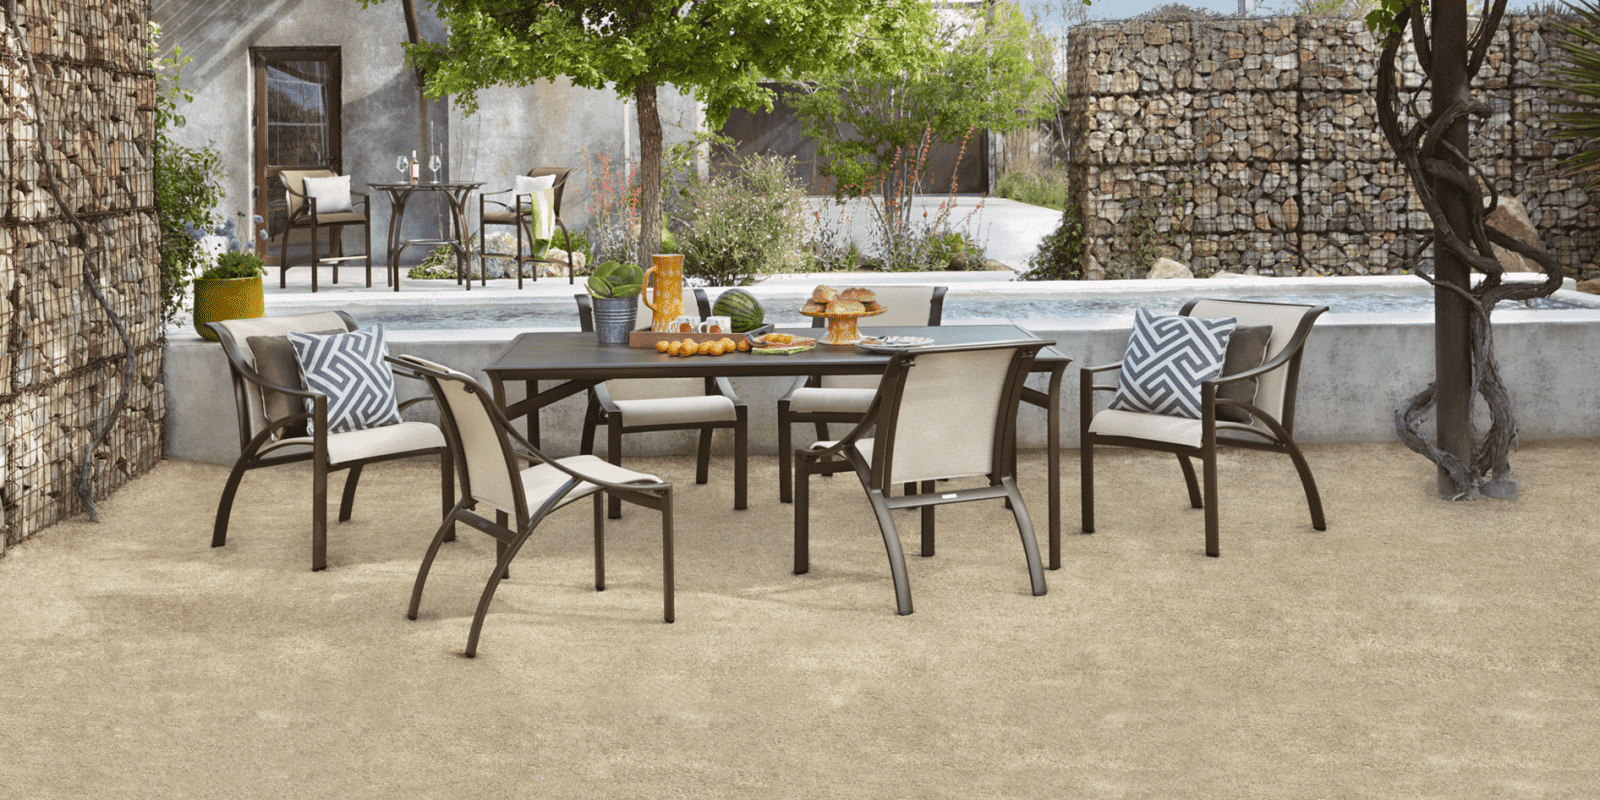 Outdoor Patio Design Specialist | American Casual Living on Casual Living Patio id=76782